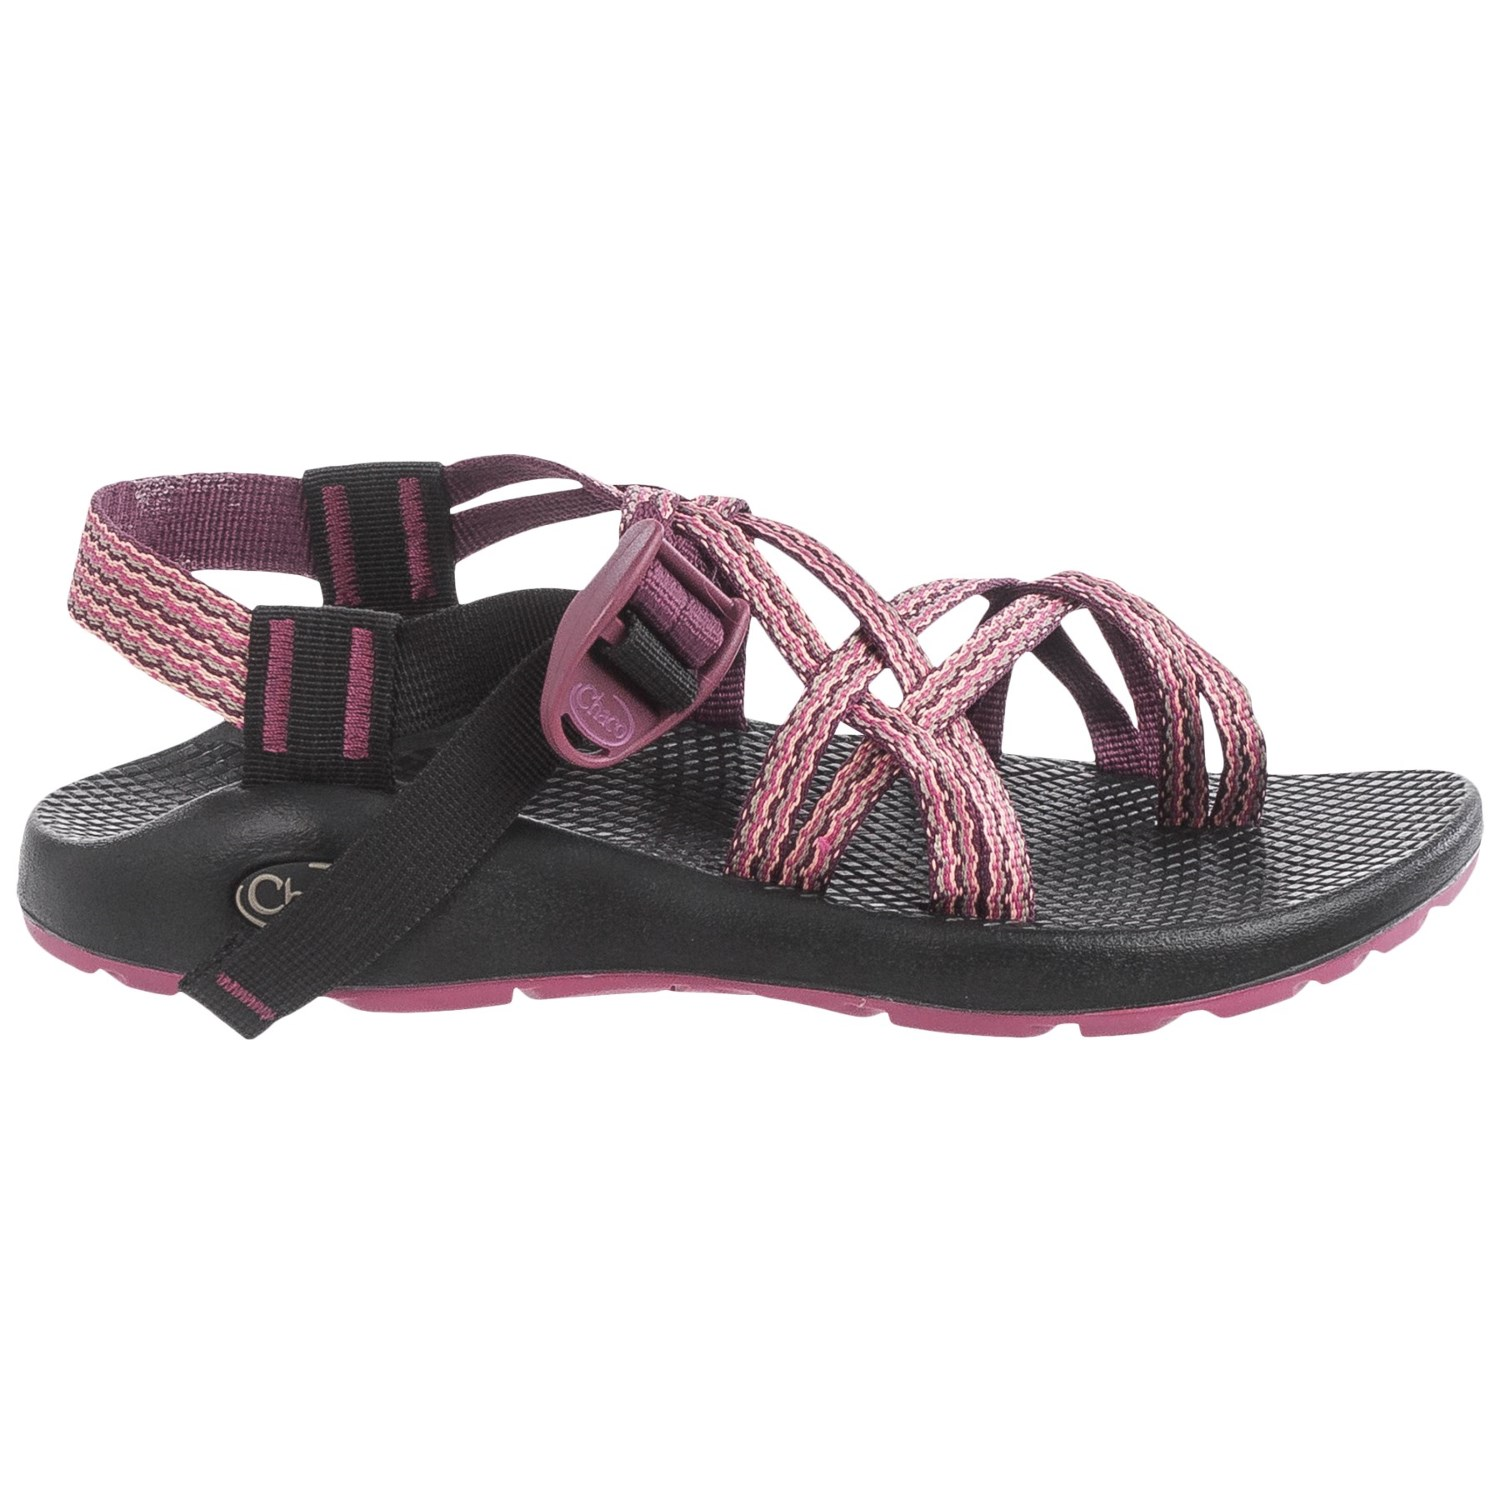 56f1596ada82 Chaco ZX 2® Classic Sport Sandals (For Women) - Save 42%